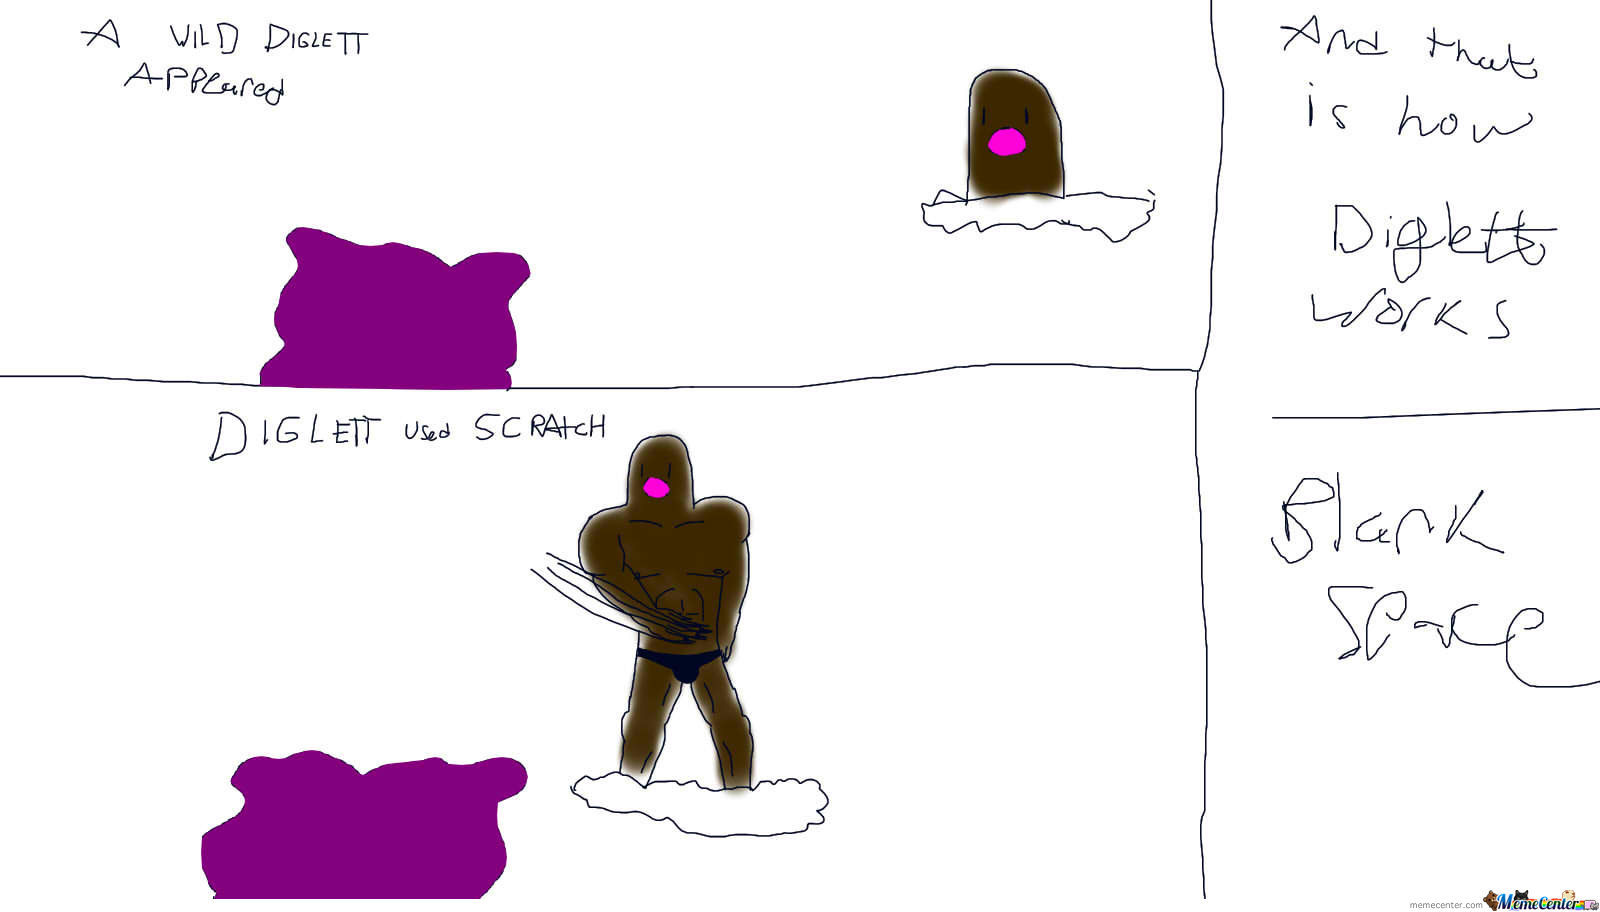 For Those Who Wonder How A Diglett Can Use Scratch